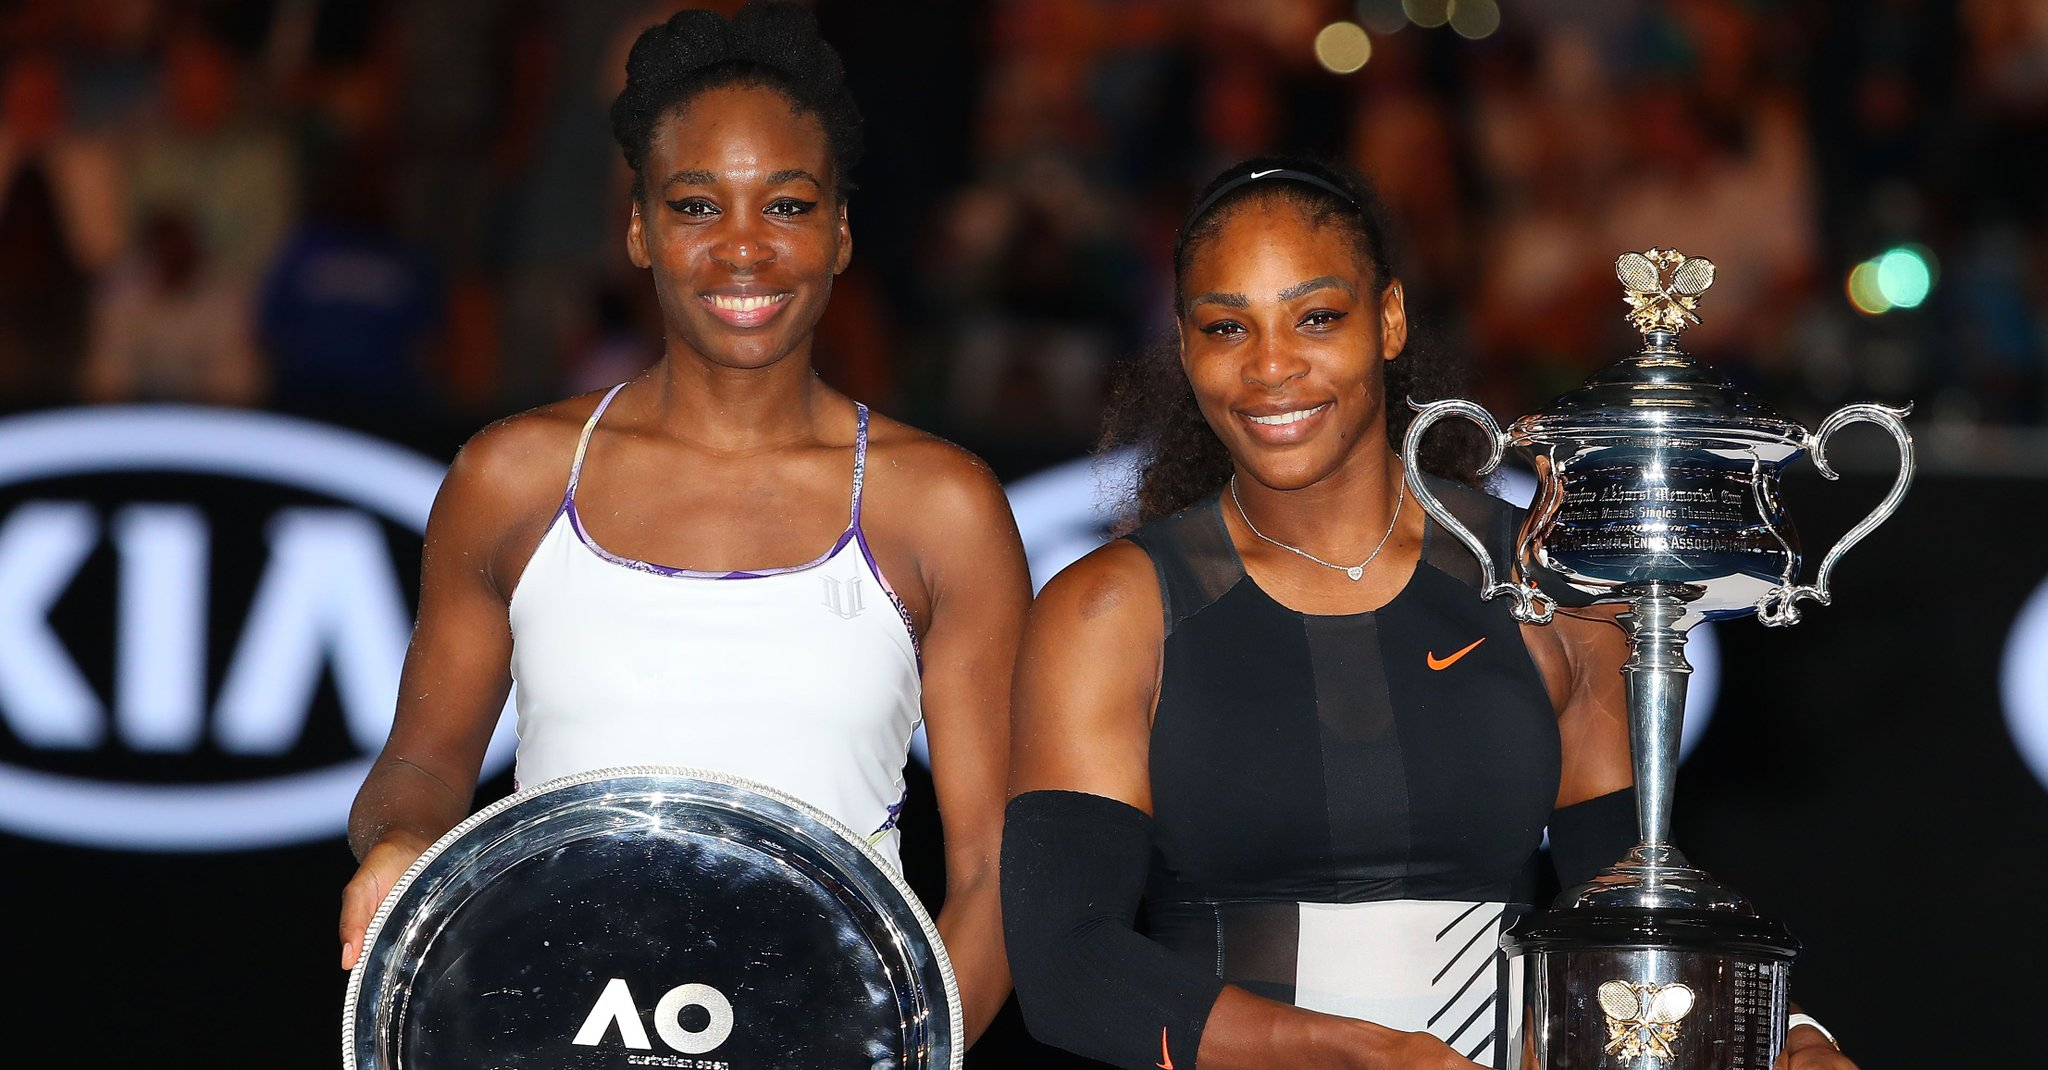 fantastic venus and Serena Williams cup still hd desktop backgroud pictures